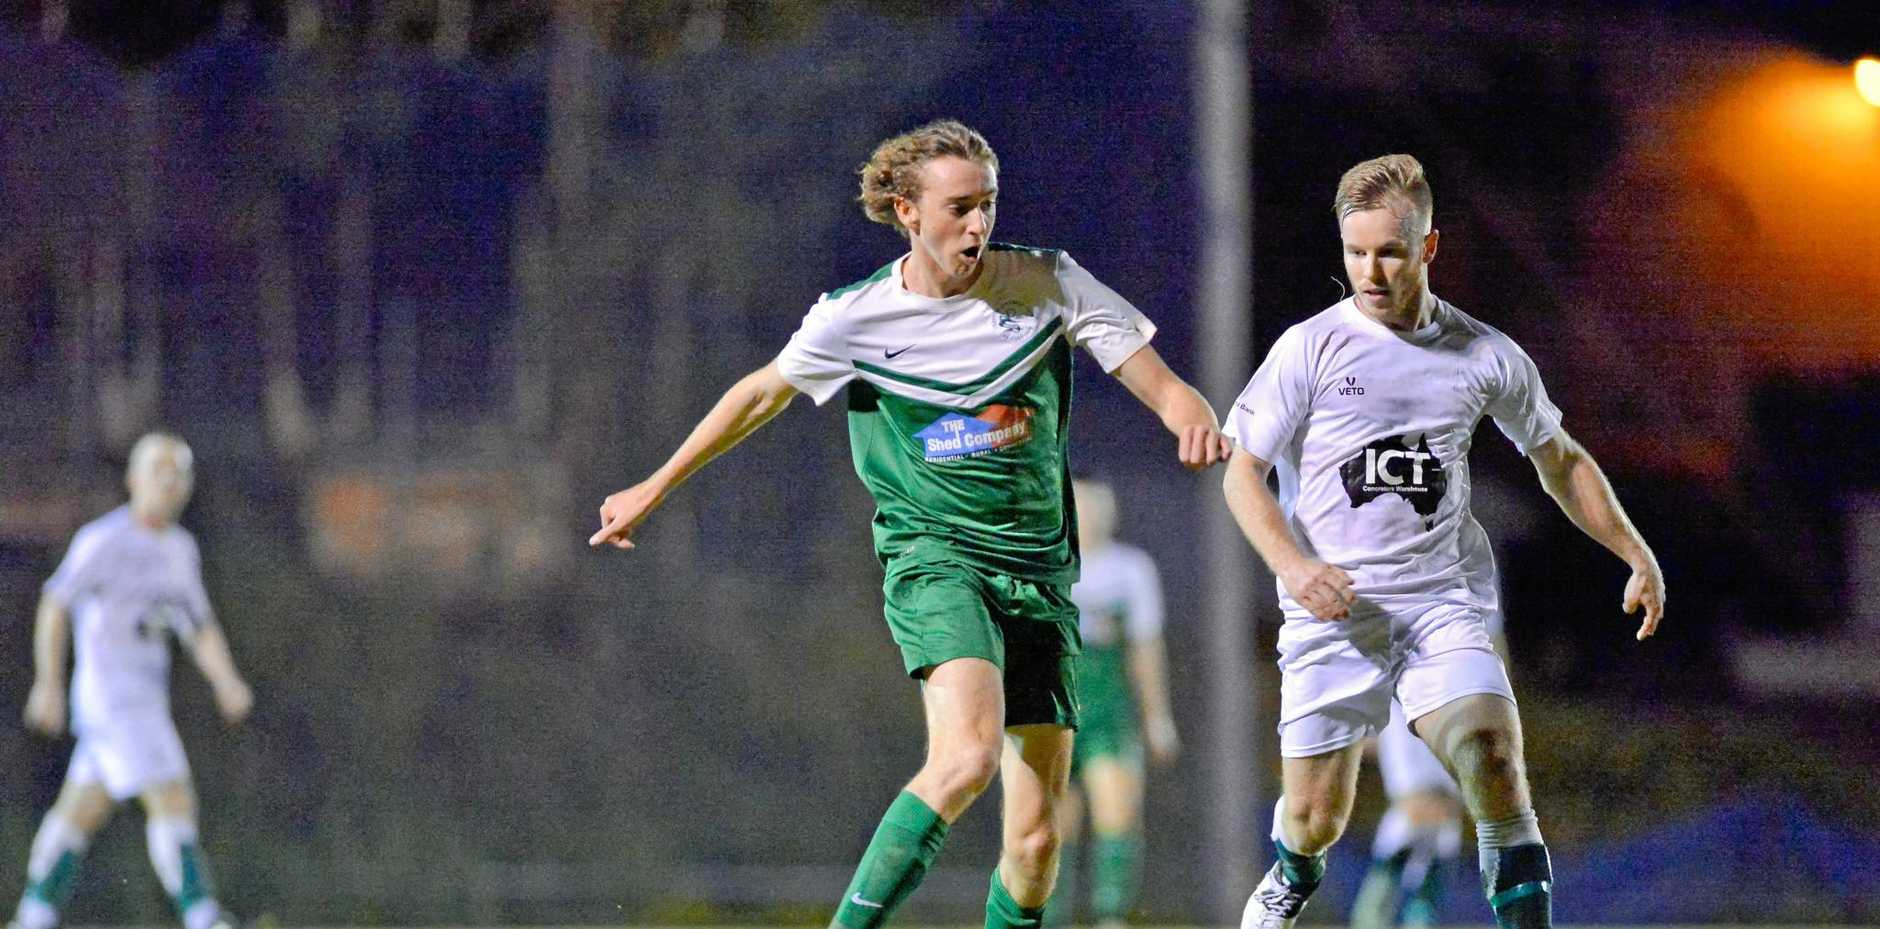 ON THE BURST: Clinton's Shannon Evans against Frenchville in an FFA Cup last month.